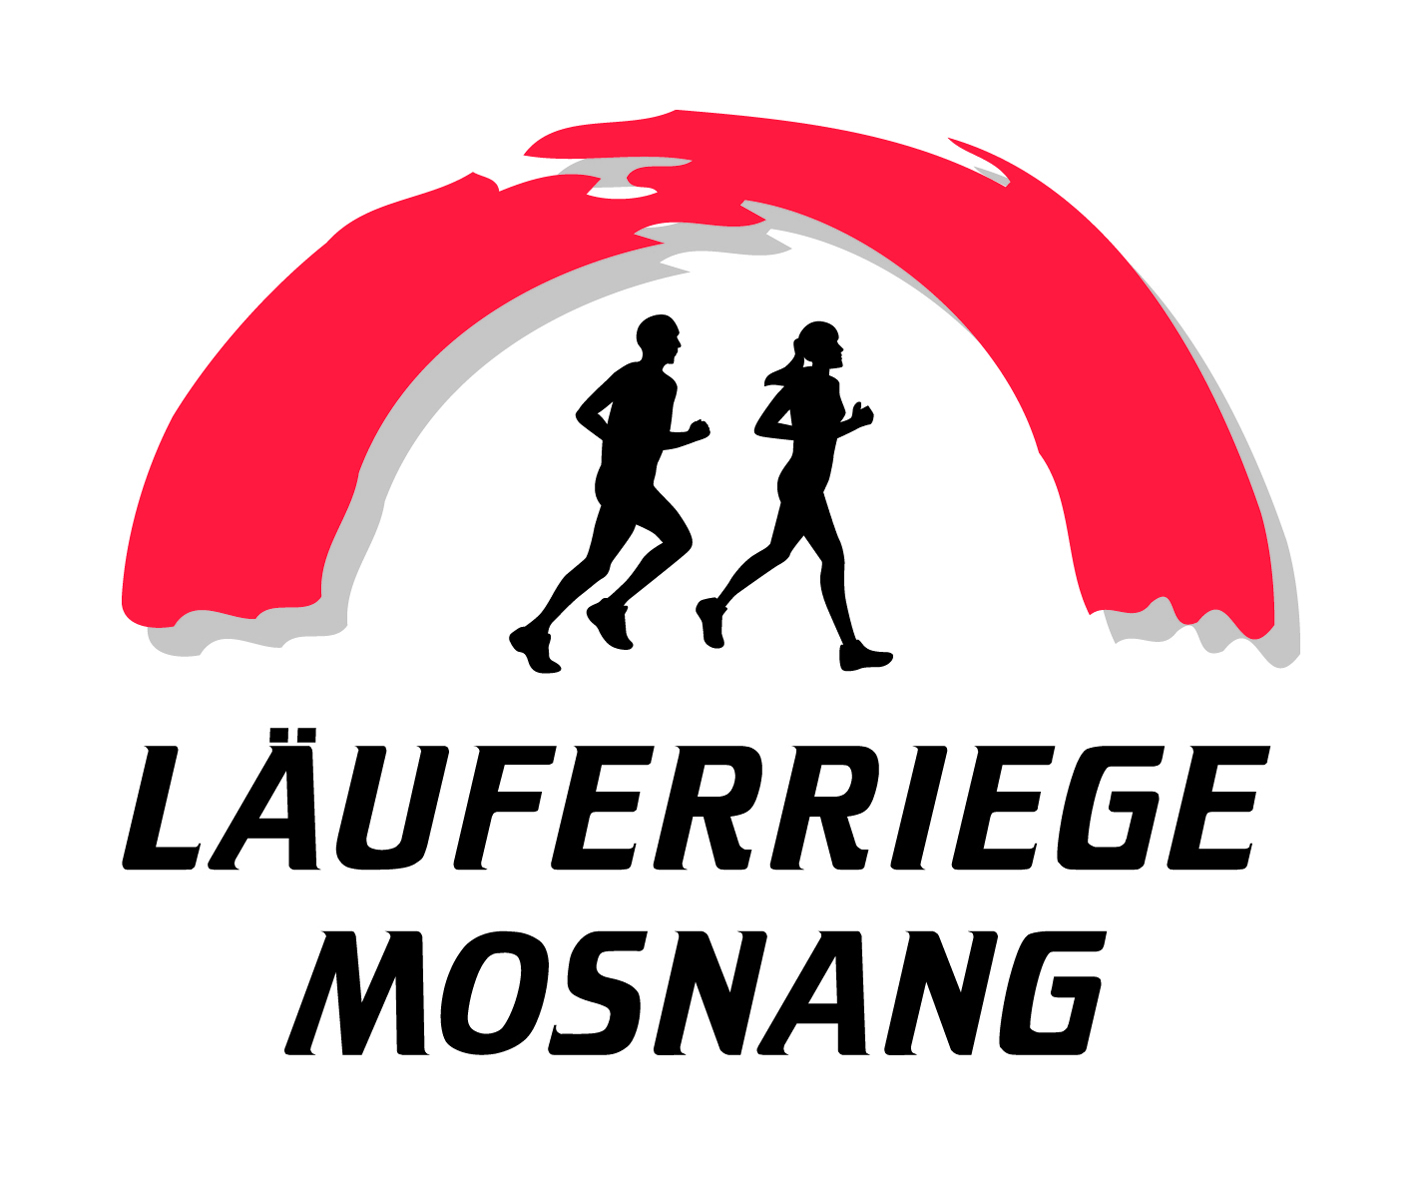 Läuferriege Mosnang 4f 1